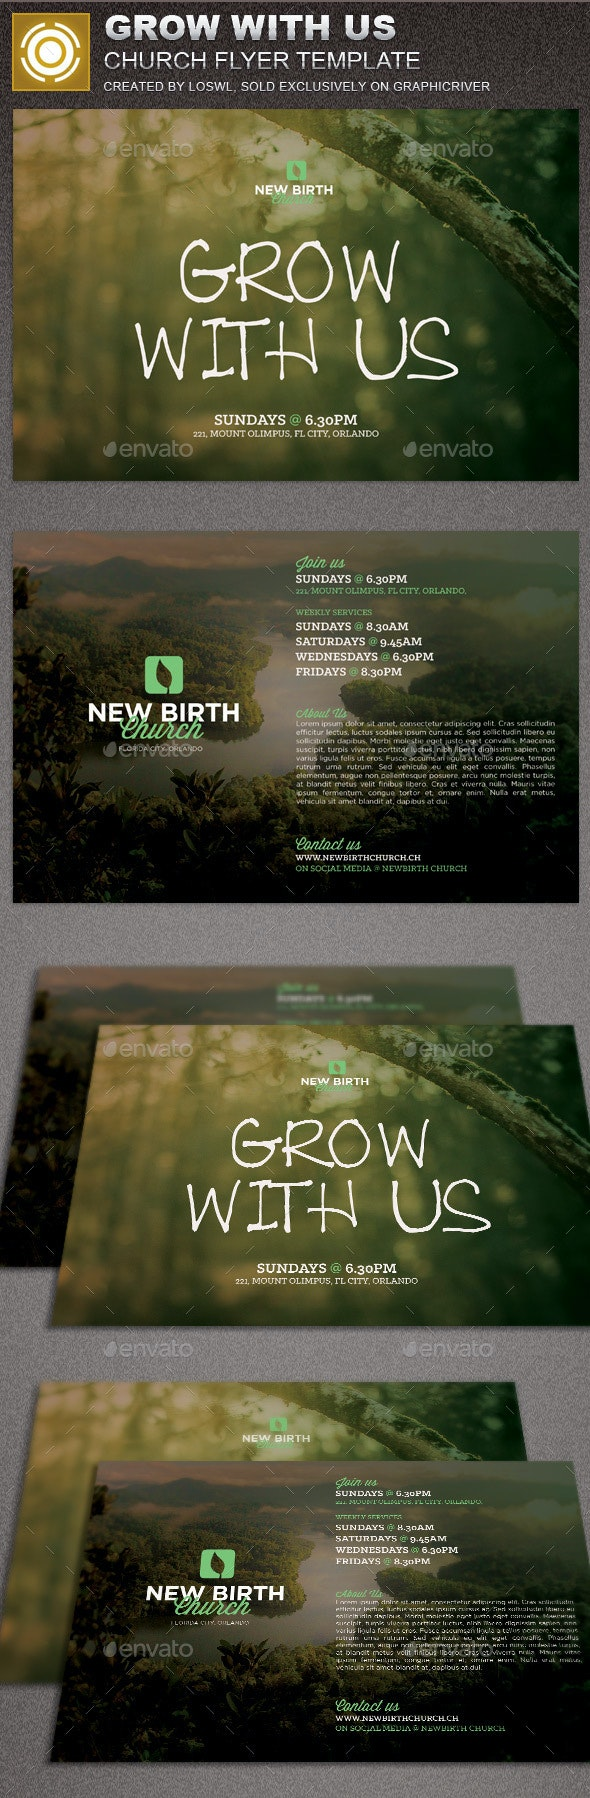 Grow With Us Church Flyer Template - Flyers Print Templates